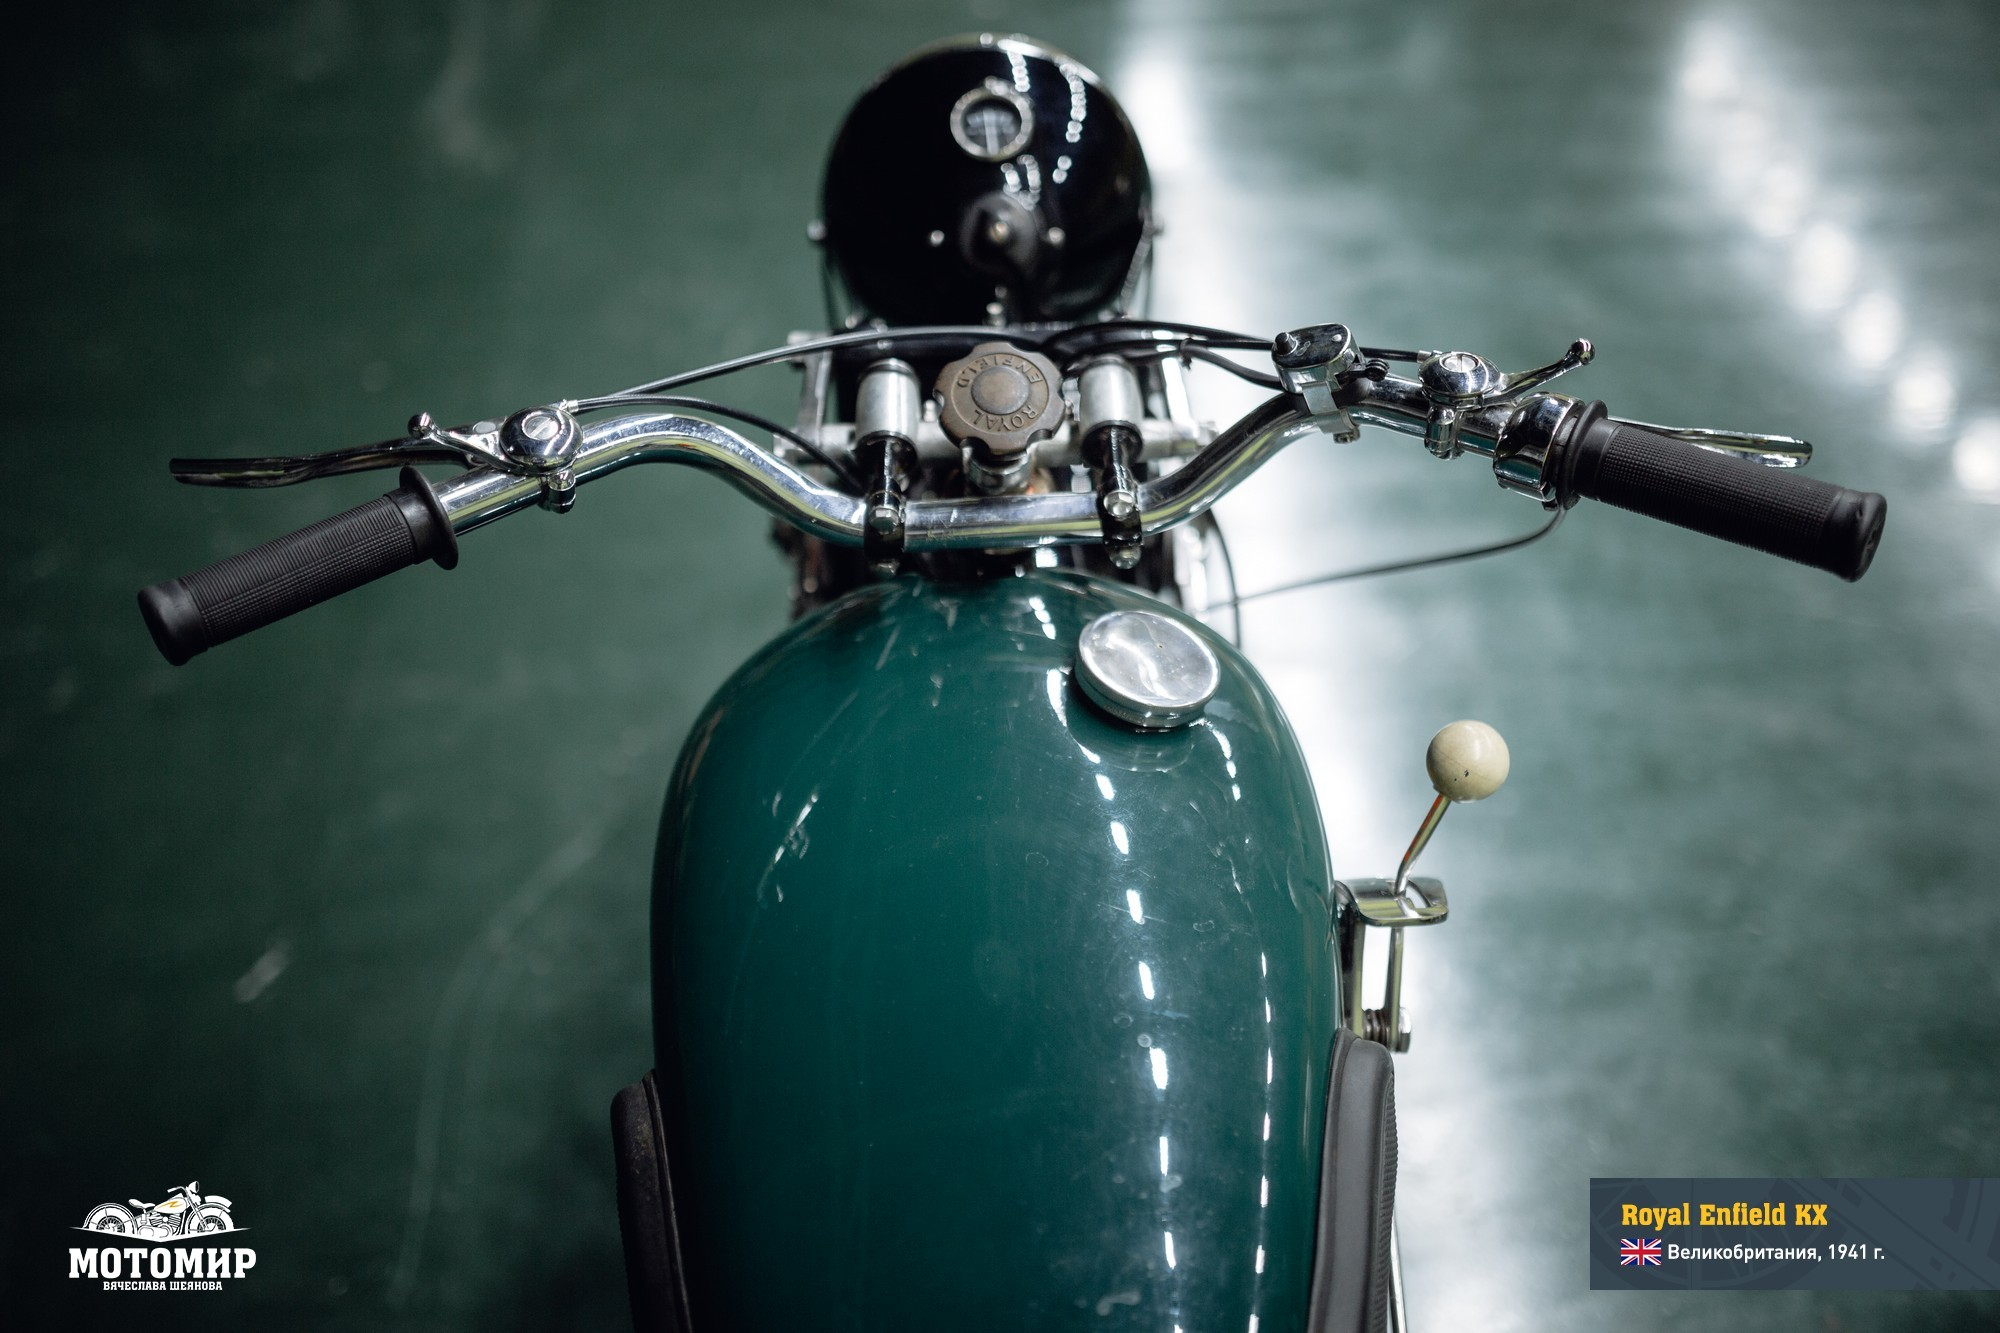 royal-enfield-kx-201601-web-45